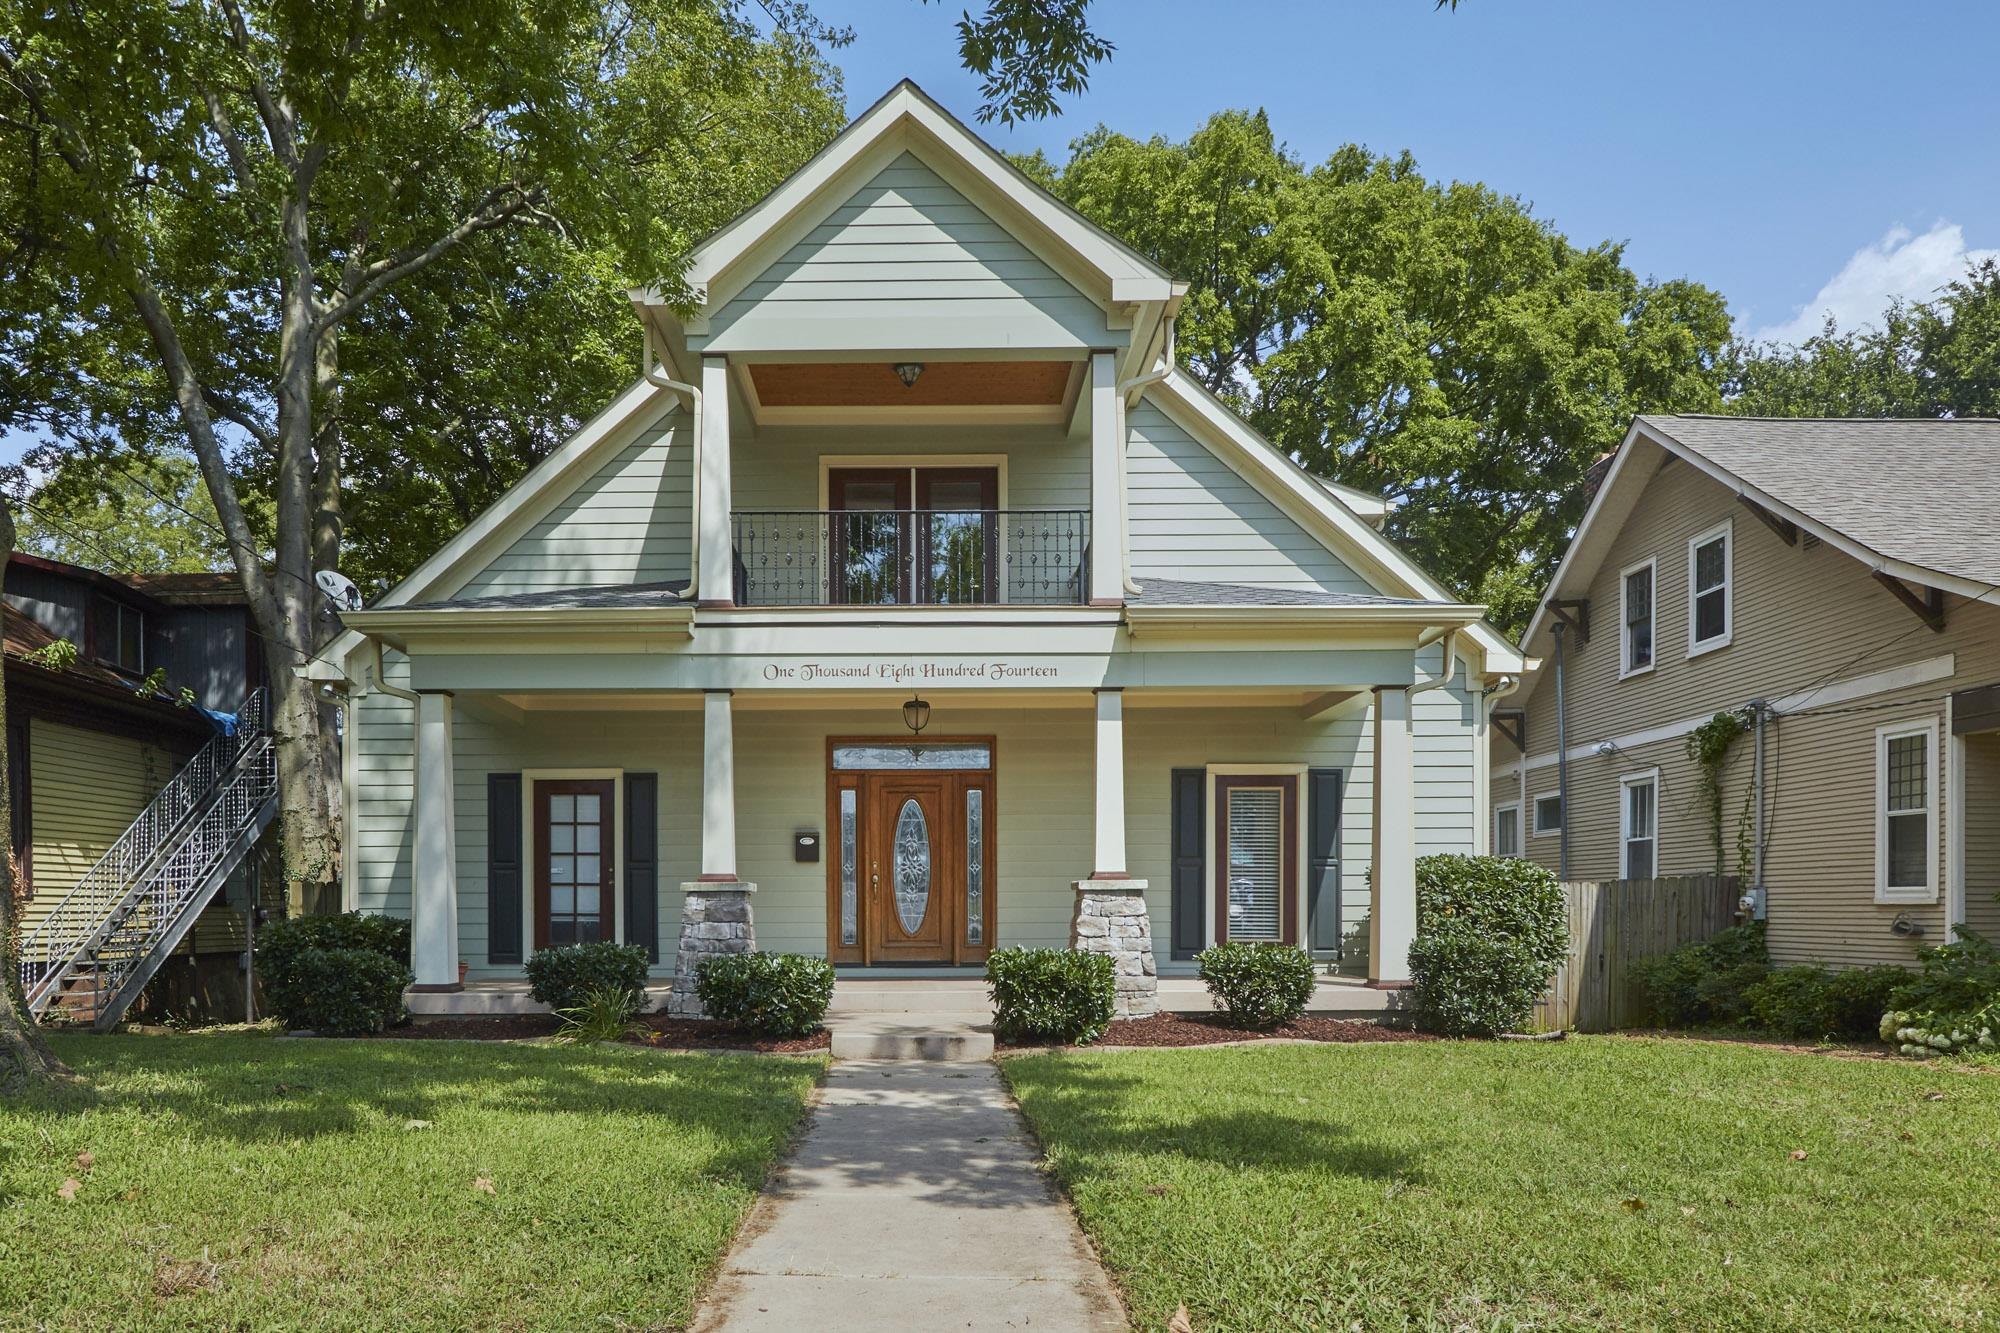 1814 Beech Ave, one of homes for sale in Nashville - Midtown